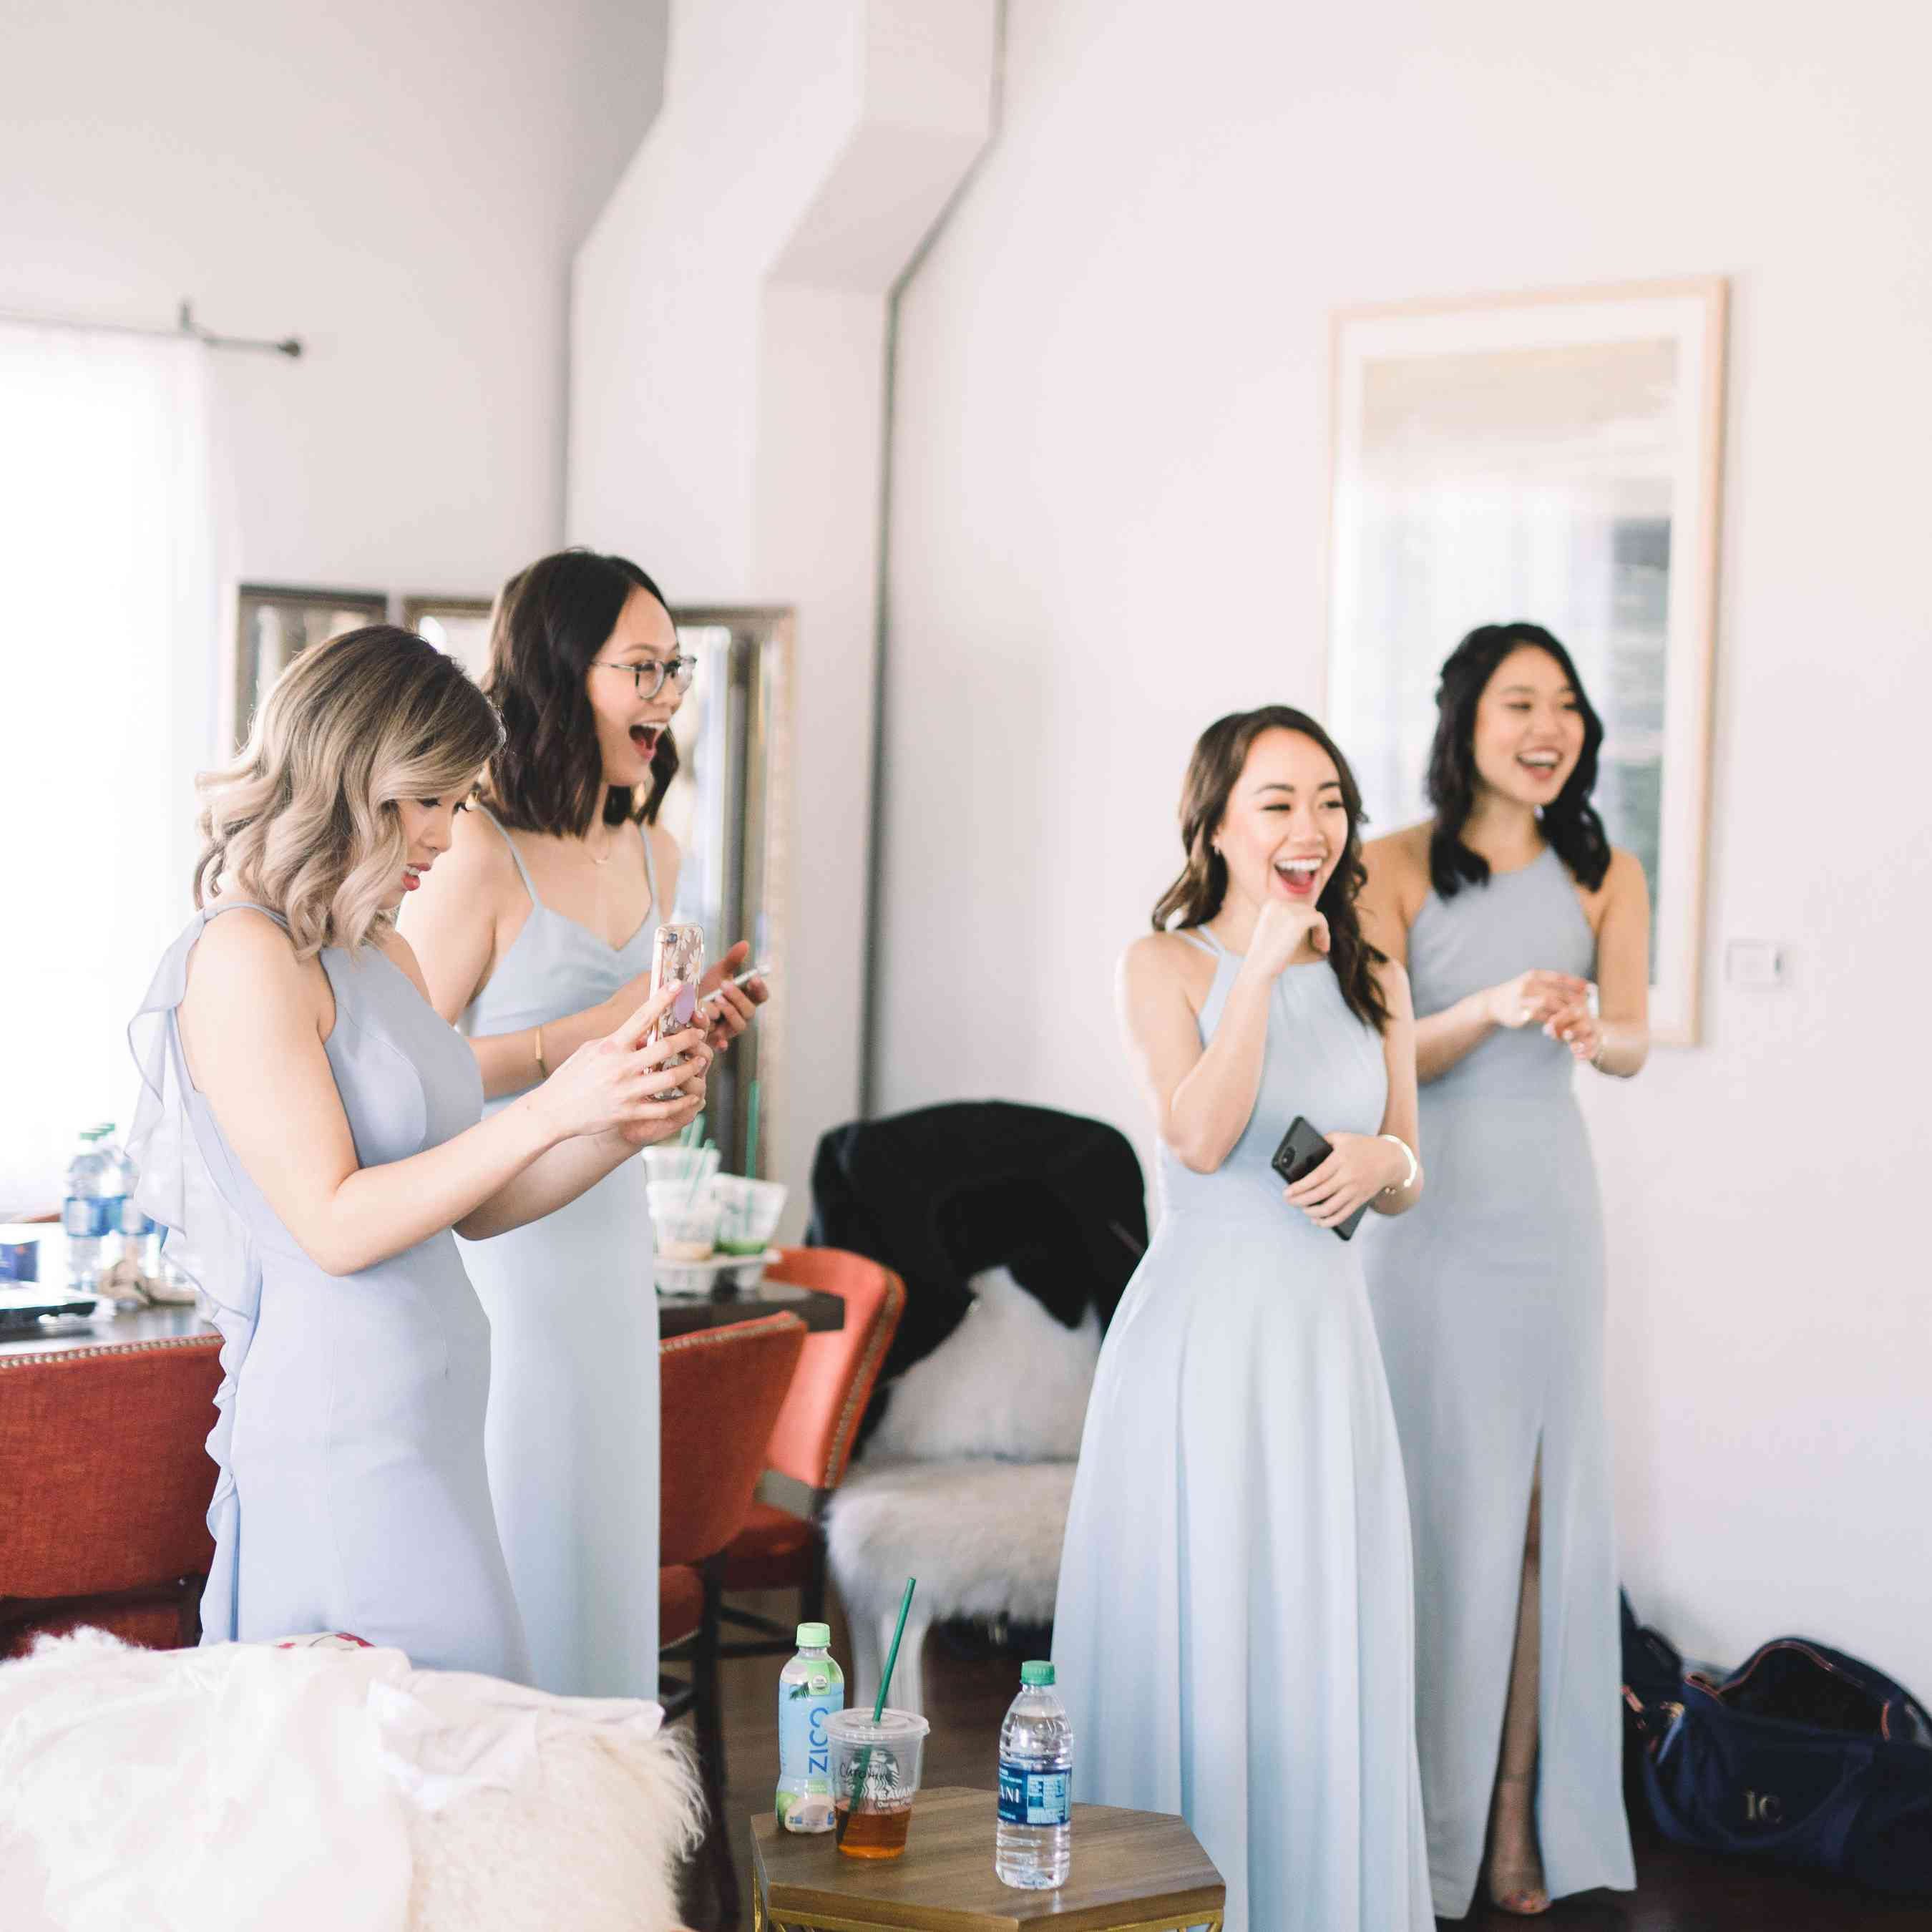 20 Engagement Party Games And Activities They Ll Love